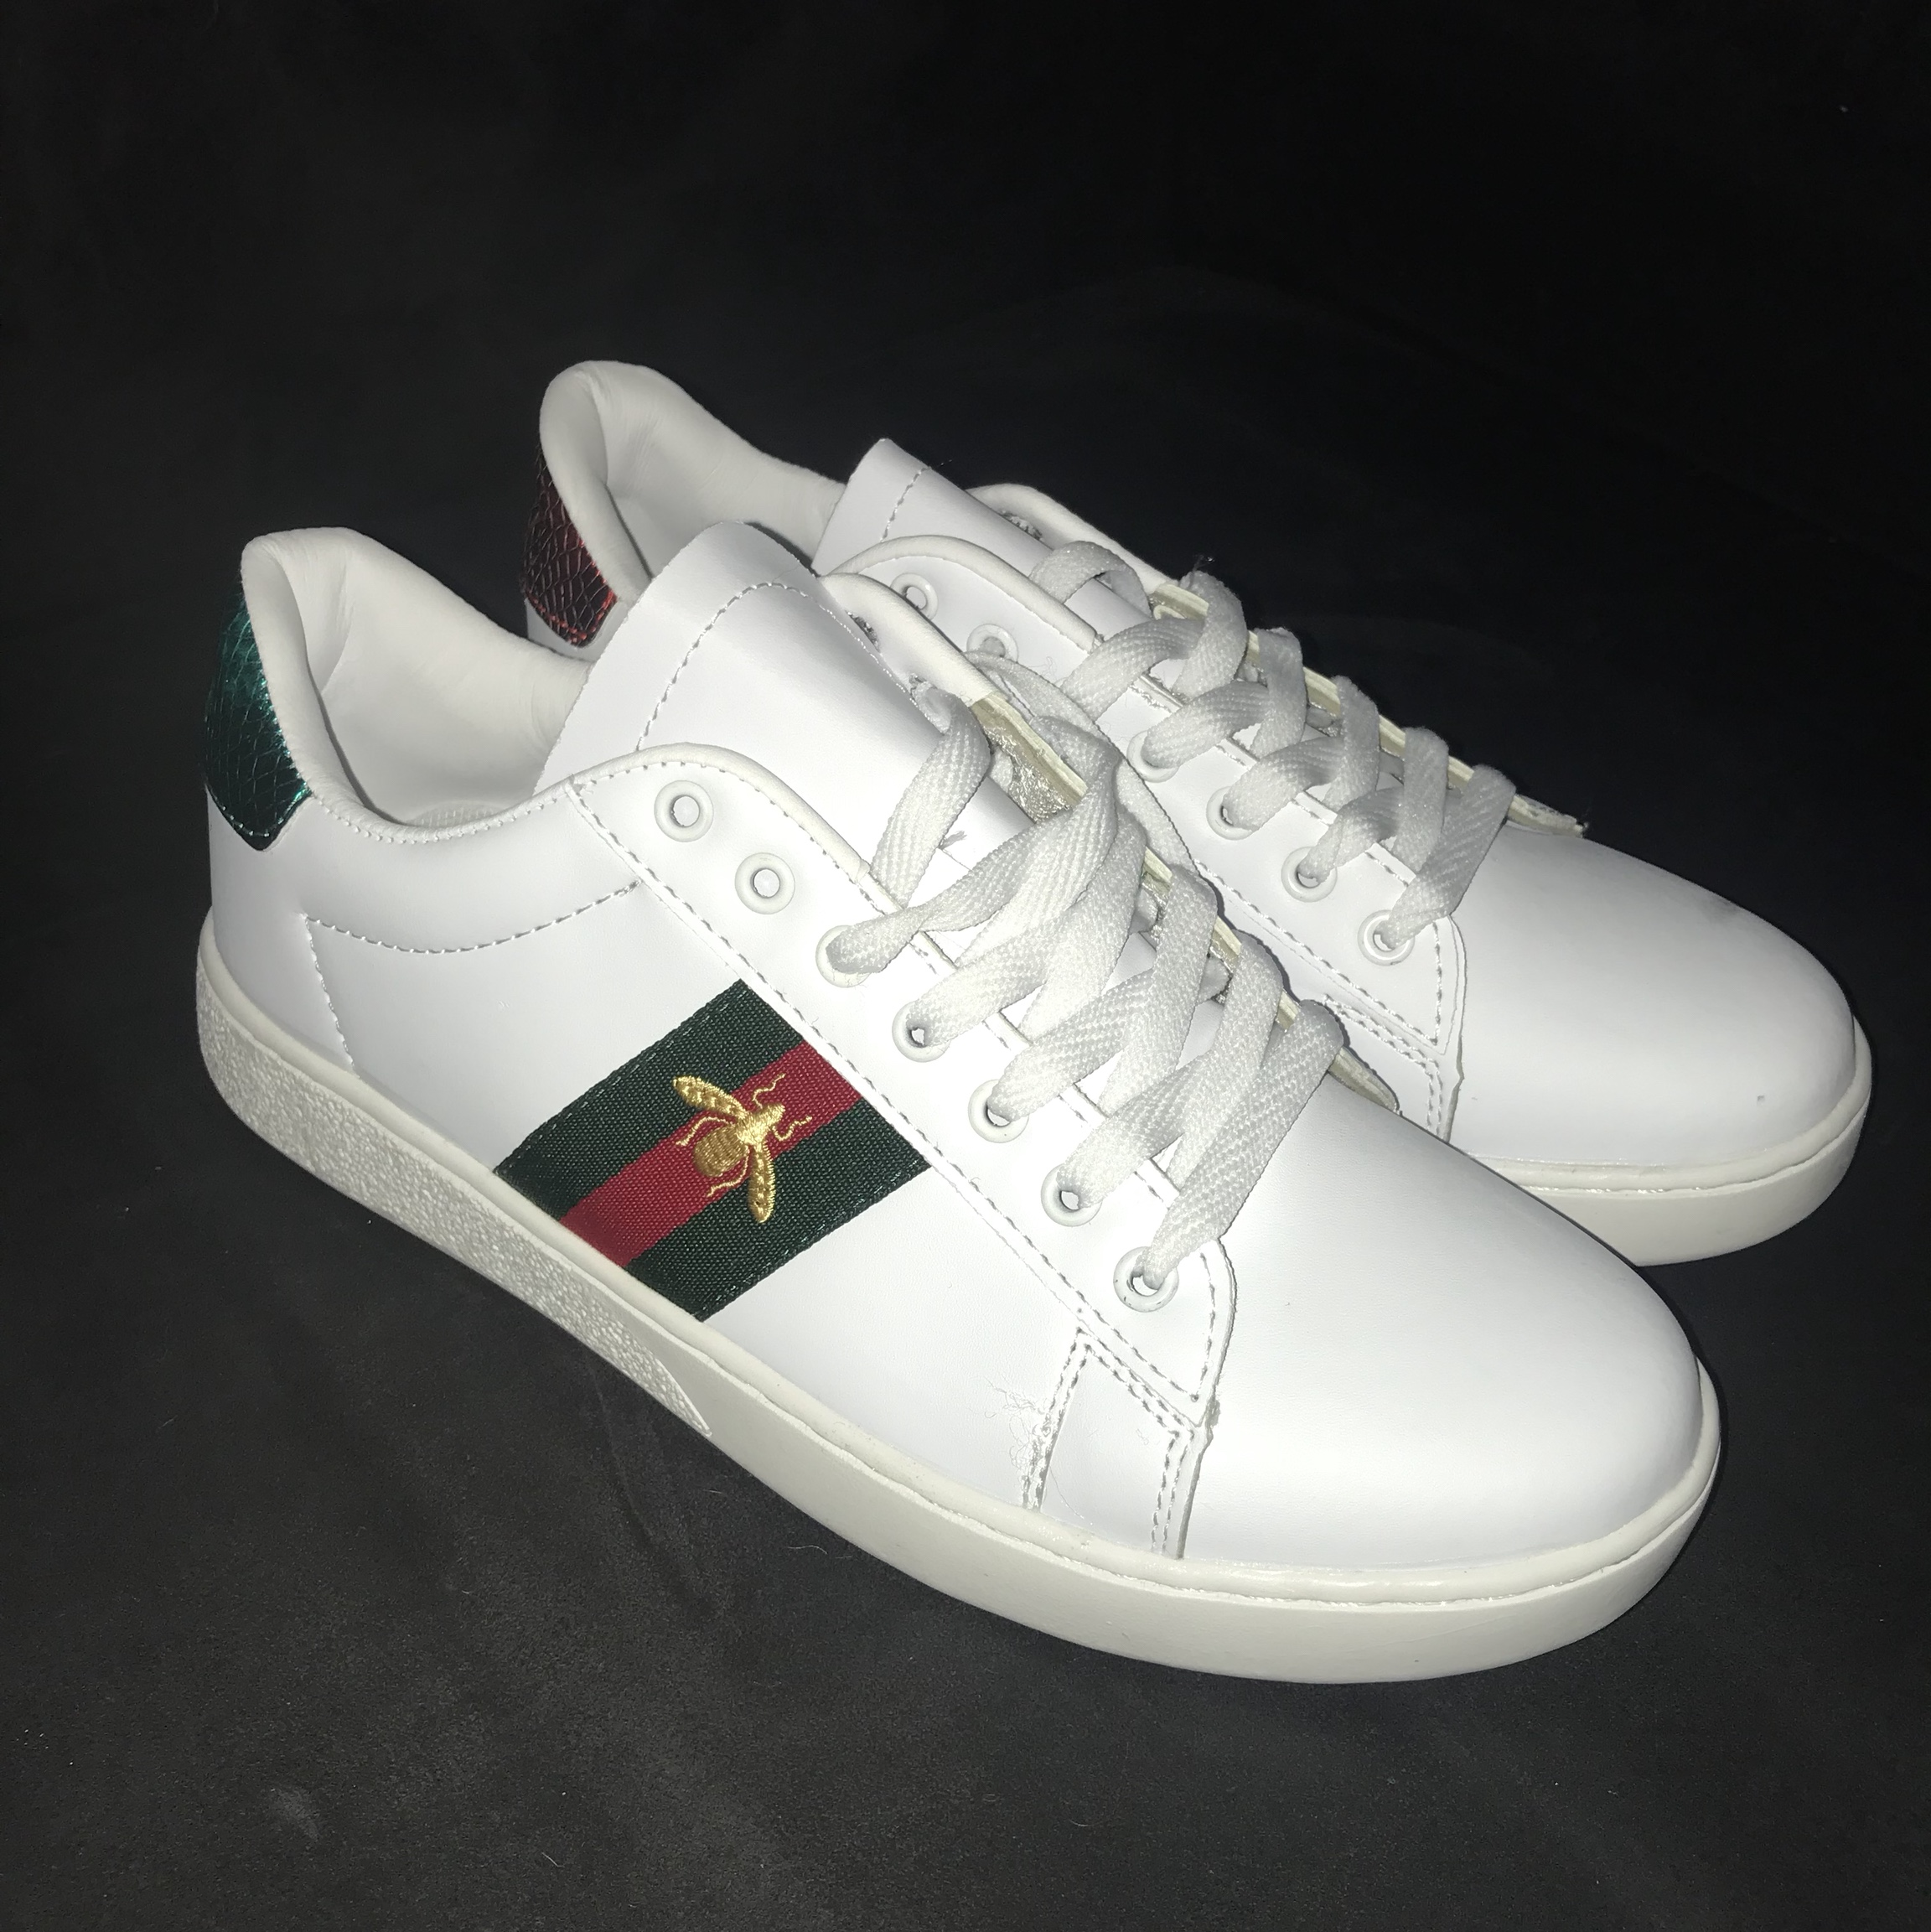 Selling these fake Gucci trainers. They